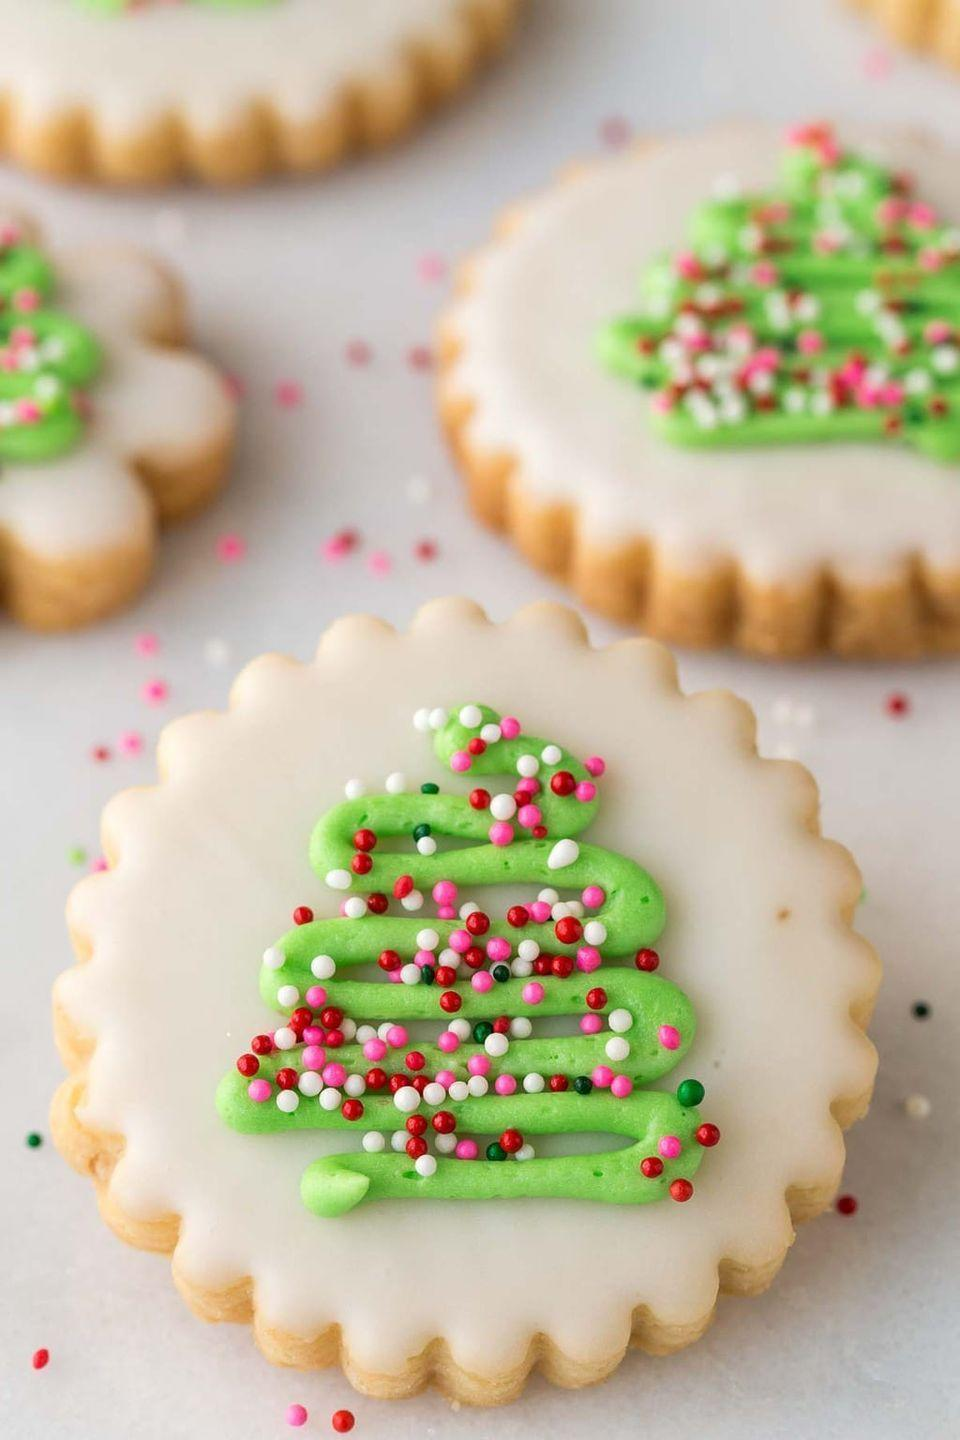 """<p>Not only are these delicate cookies beautiful, but they're also very easy to <a href=""""https://www.countryliving.com/food-drinks/g2777/christmas-sugar-cookies/"""" rel=""""nofollow noopener"""" target=""""_blank"""" data-ylk=""""slk:decorate"""" class=""""link rapid-noclick-resp"""">decorate</a>. Just follow this blogger's tips and tricks and your batch will look just as stunning as hers.</p><p><strong>Get the recipe at <a href=""""https://thecafesucrefarine.com/christmas-shortbread-cookies/"""" rel=""""nofollow noopener"""" target=""""_blank"""" data-ylk=""""slk:The Café Sucre Farine"""" class=""""link rapid-noclick-resp"""">The Café Sucre Farine</a>.</strong><br></p><p><strong><a class=""""link rapid-noclick-resp"""" href=""""https://www.amazon.com/dp/B07FYRHSW4/?tag=syn-yahoo-20&ascsubtag=%5Bartid%7C10050.g.647%5Bsrc%7Cyahoo-us"""" rel=""""nofollow noopener"""" target=""""_blank"""" data-ylk=""""slk:SHOP DECORATING TIPS"""">SHOP DECORATING TIPS</a><br></strong></p>"""